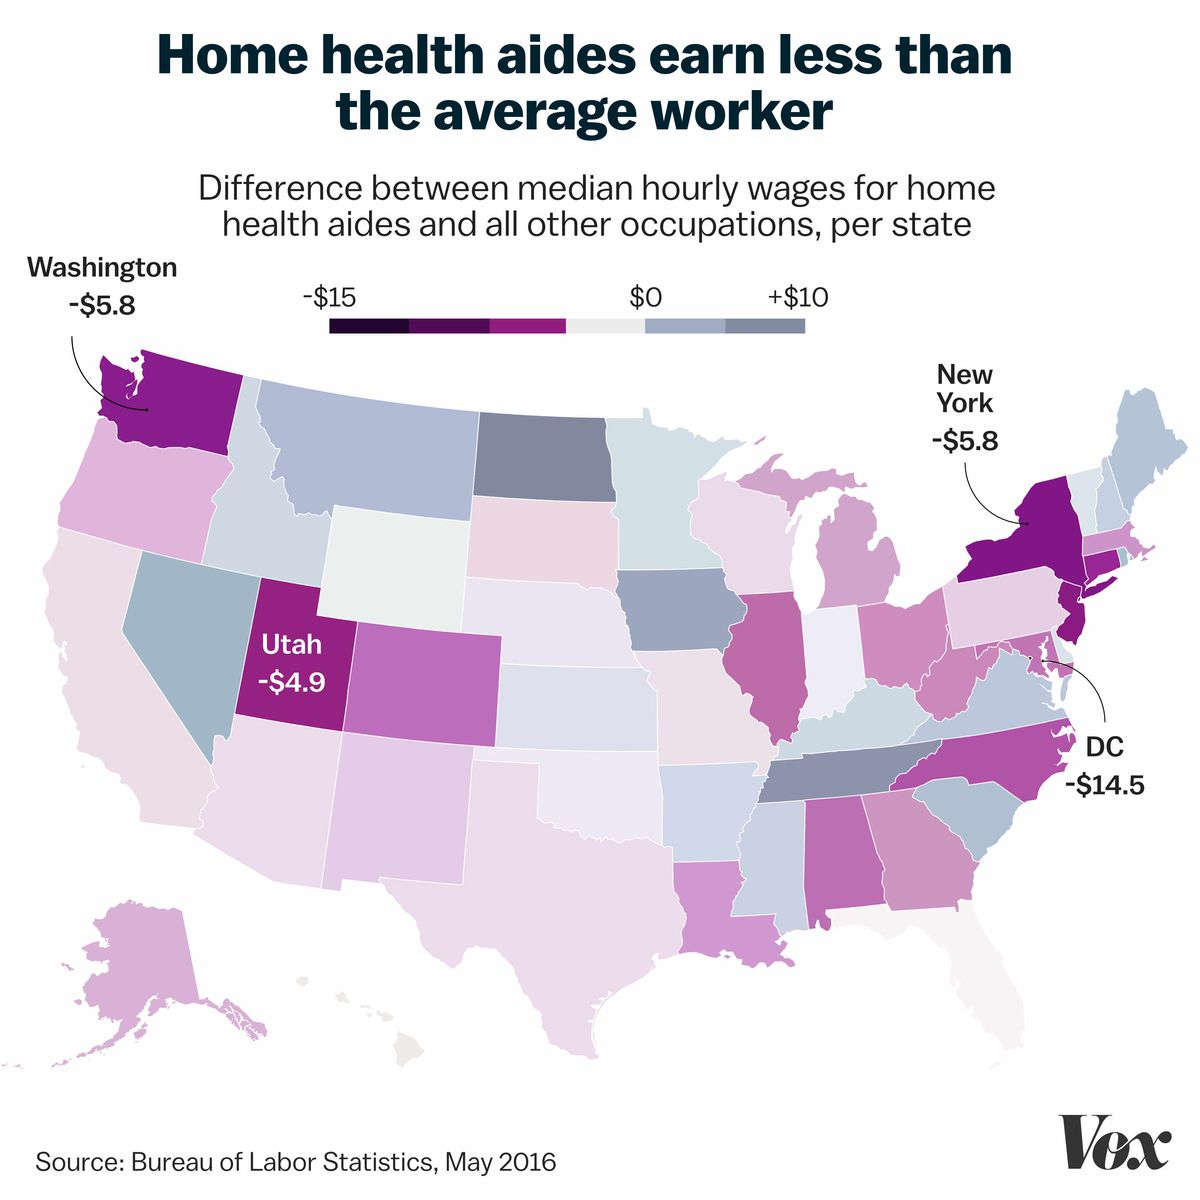 Map title: Home health aides earn less than the average worker. Map subtitle: Difference between median hourly wages for home health aides and all other occupations, per state. Source: Bureau of Labor Statistics, May 2016